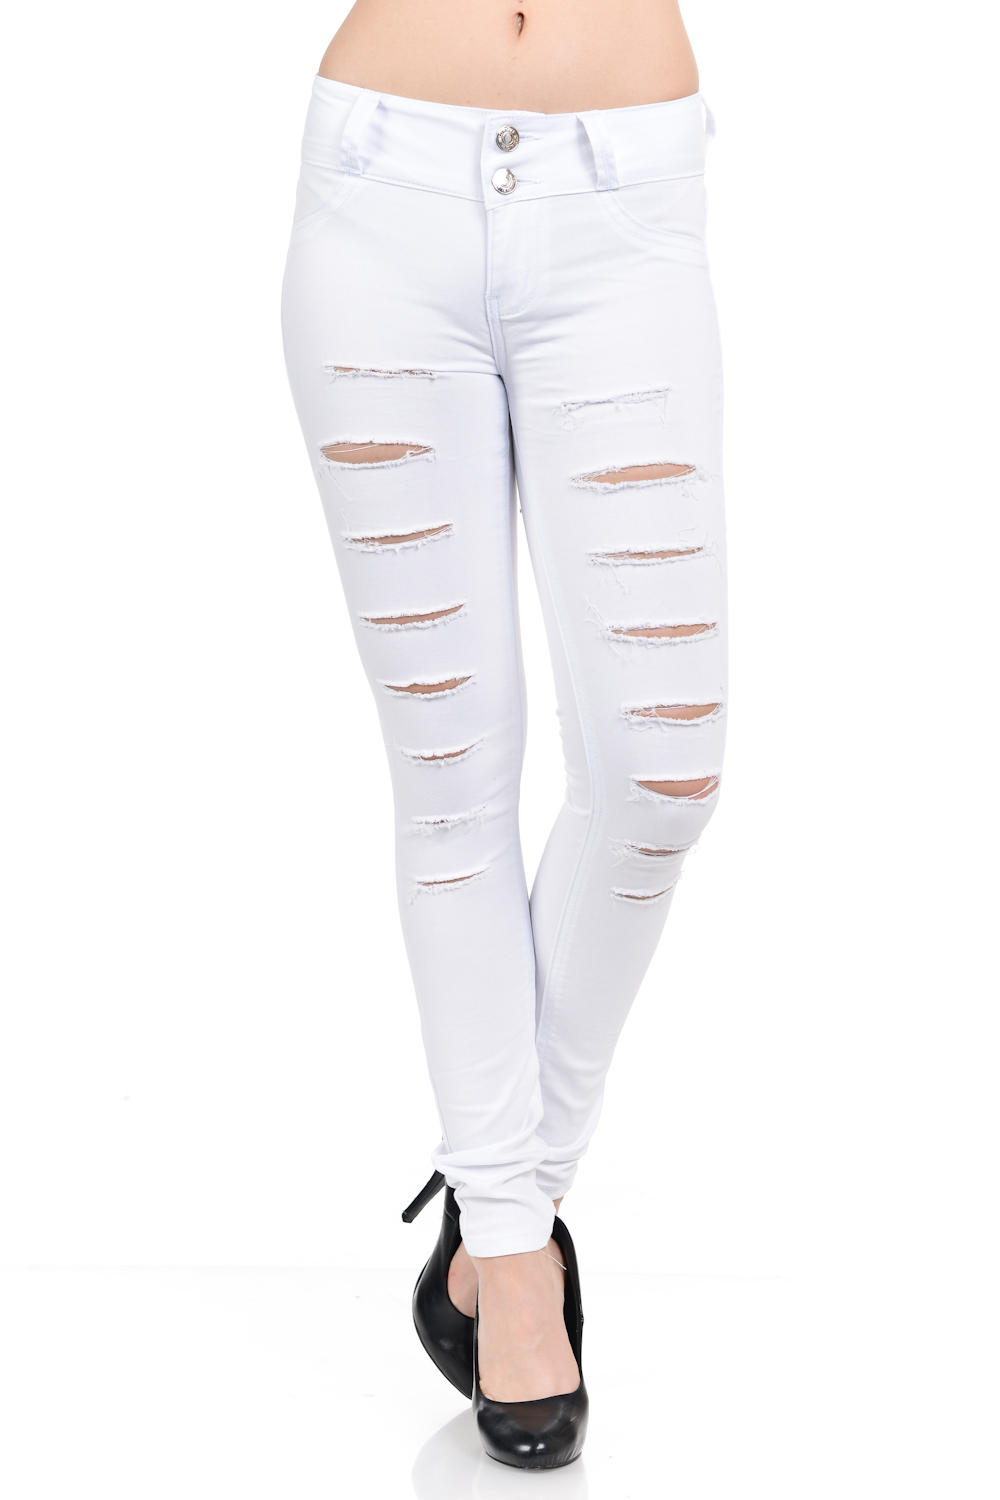 M.Michel Women's Jeans Colombian Design, Butt Lift, Levanta Cola, Push Up, Skinny · Style N141-R